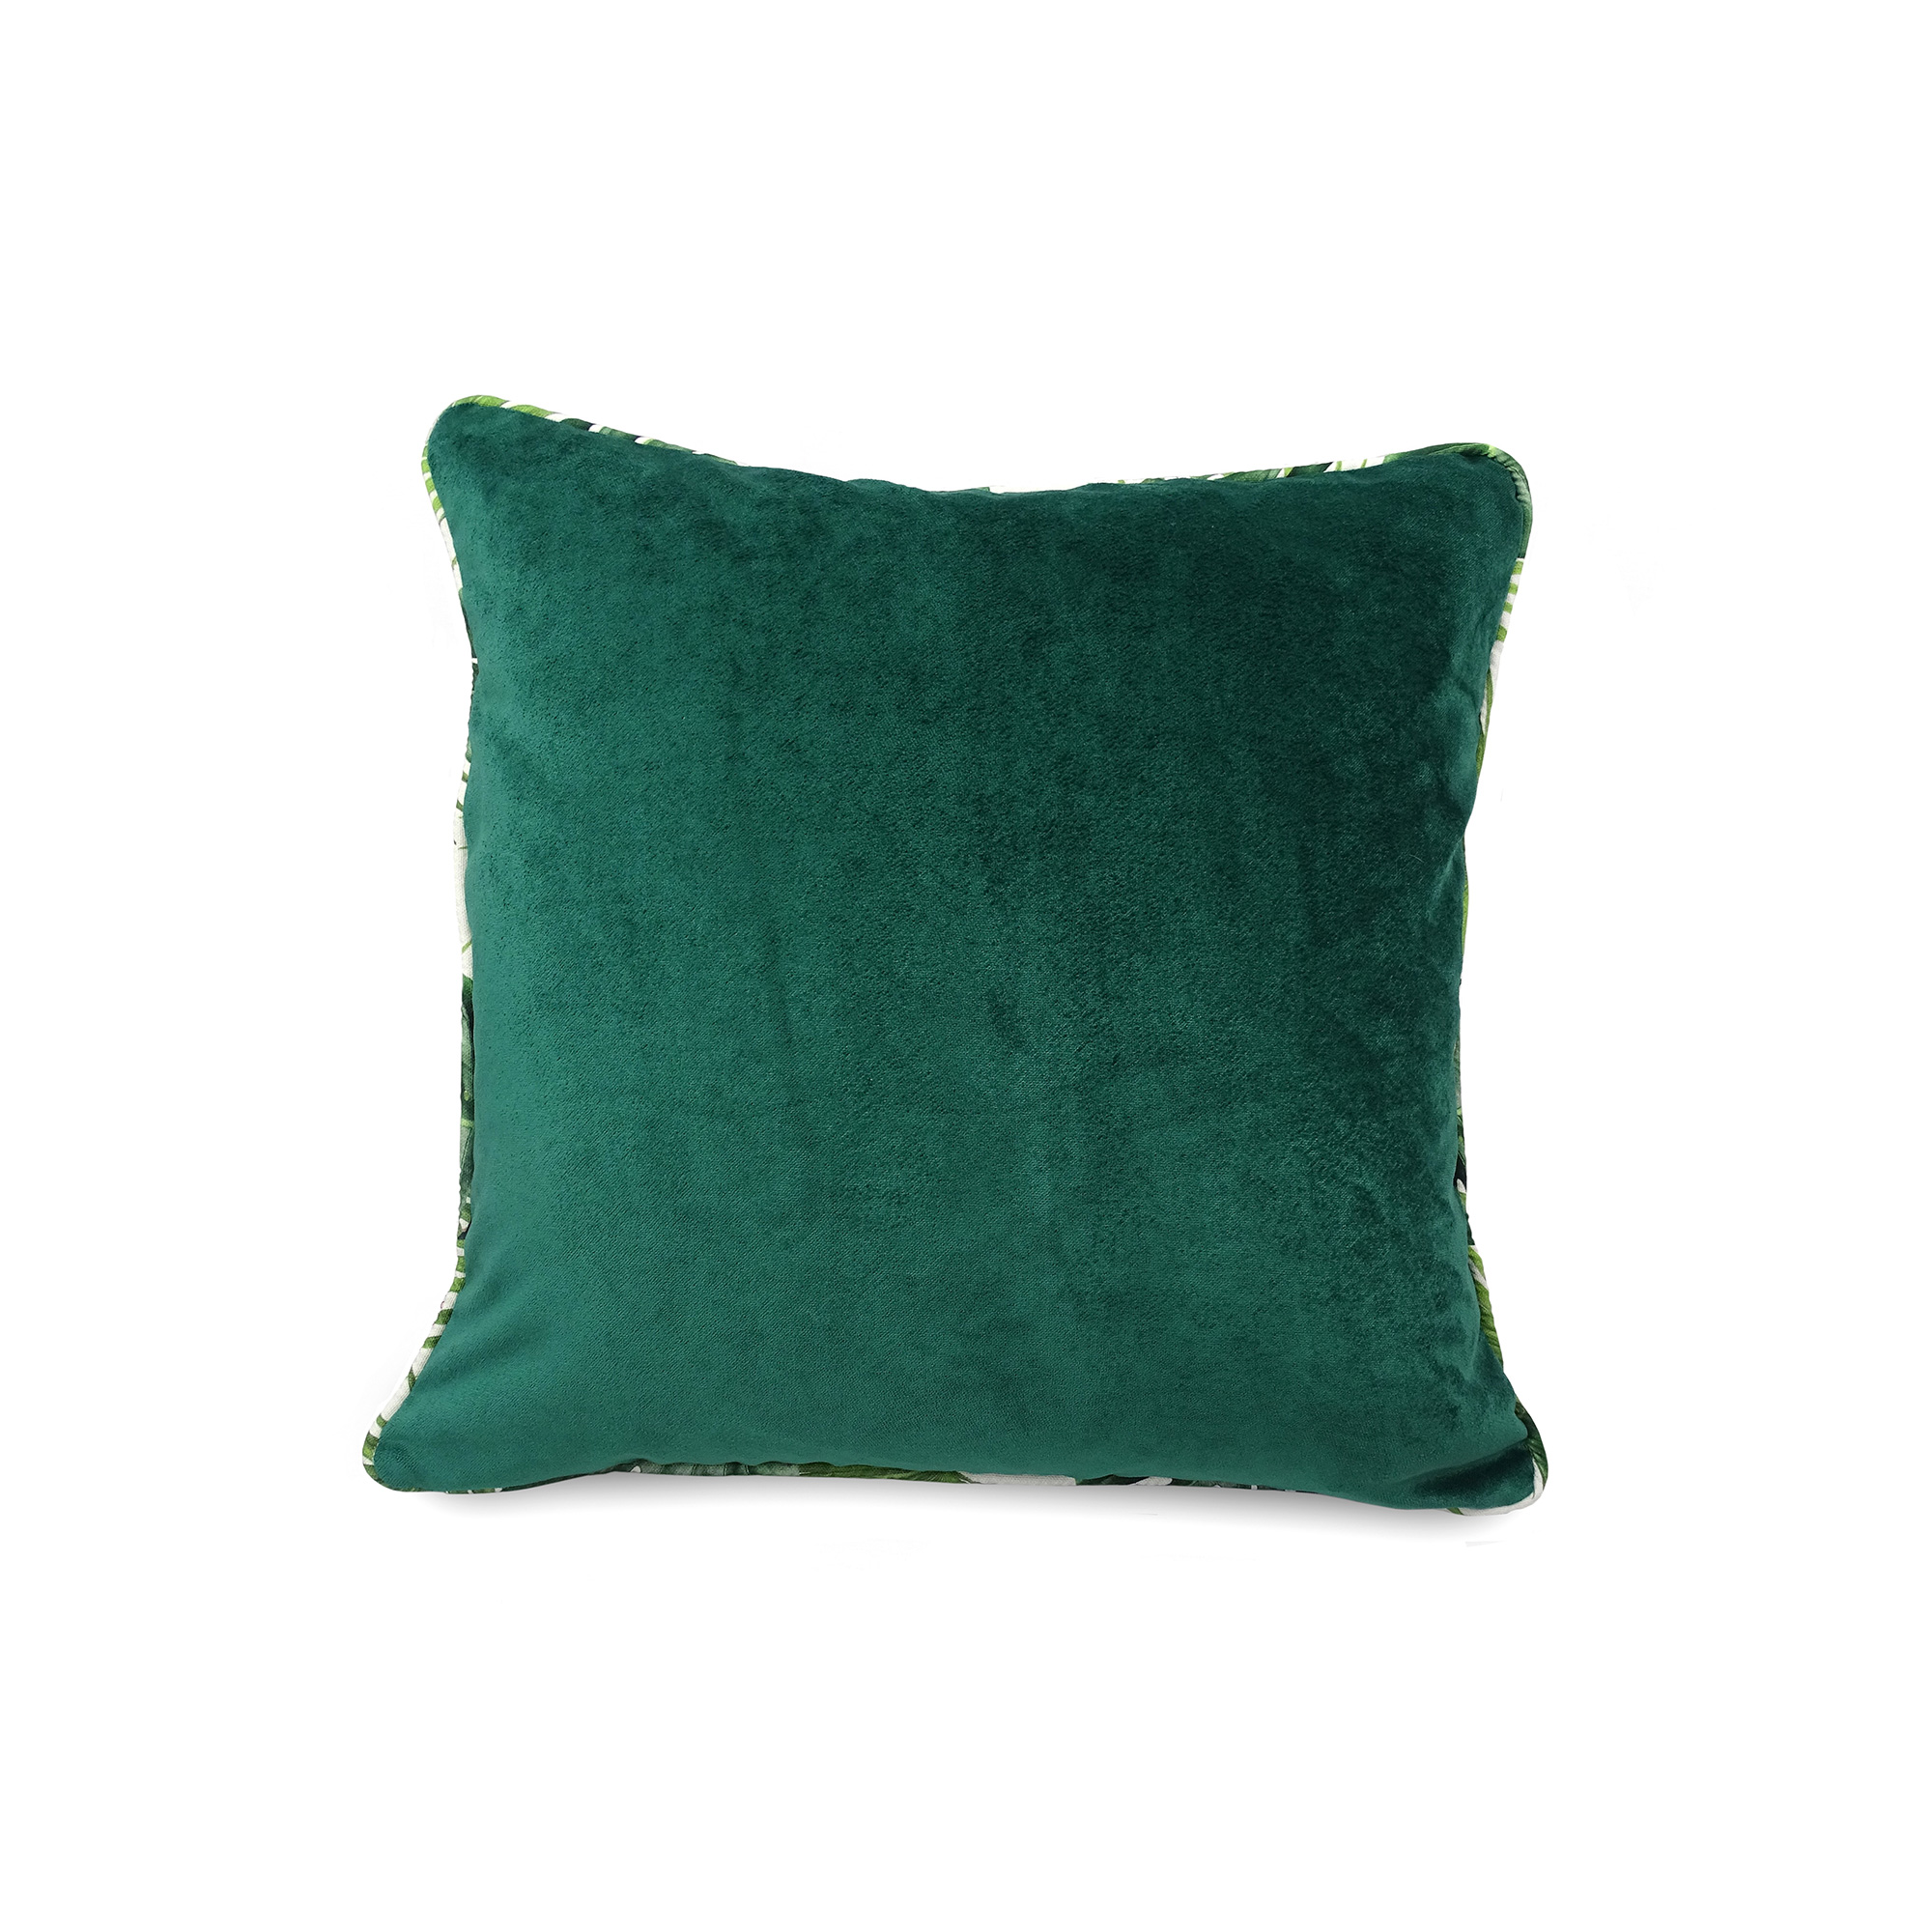 luxurious green smithh journal account pillow h login my nig x forest velvet retailer product